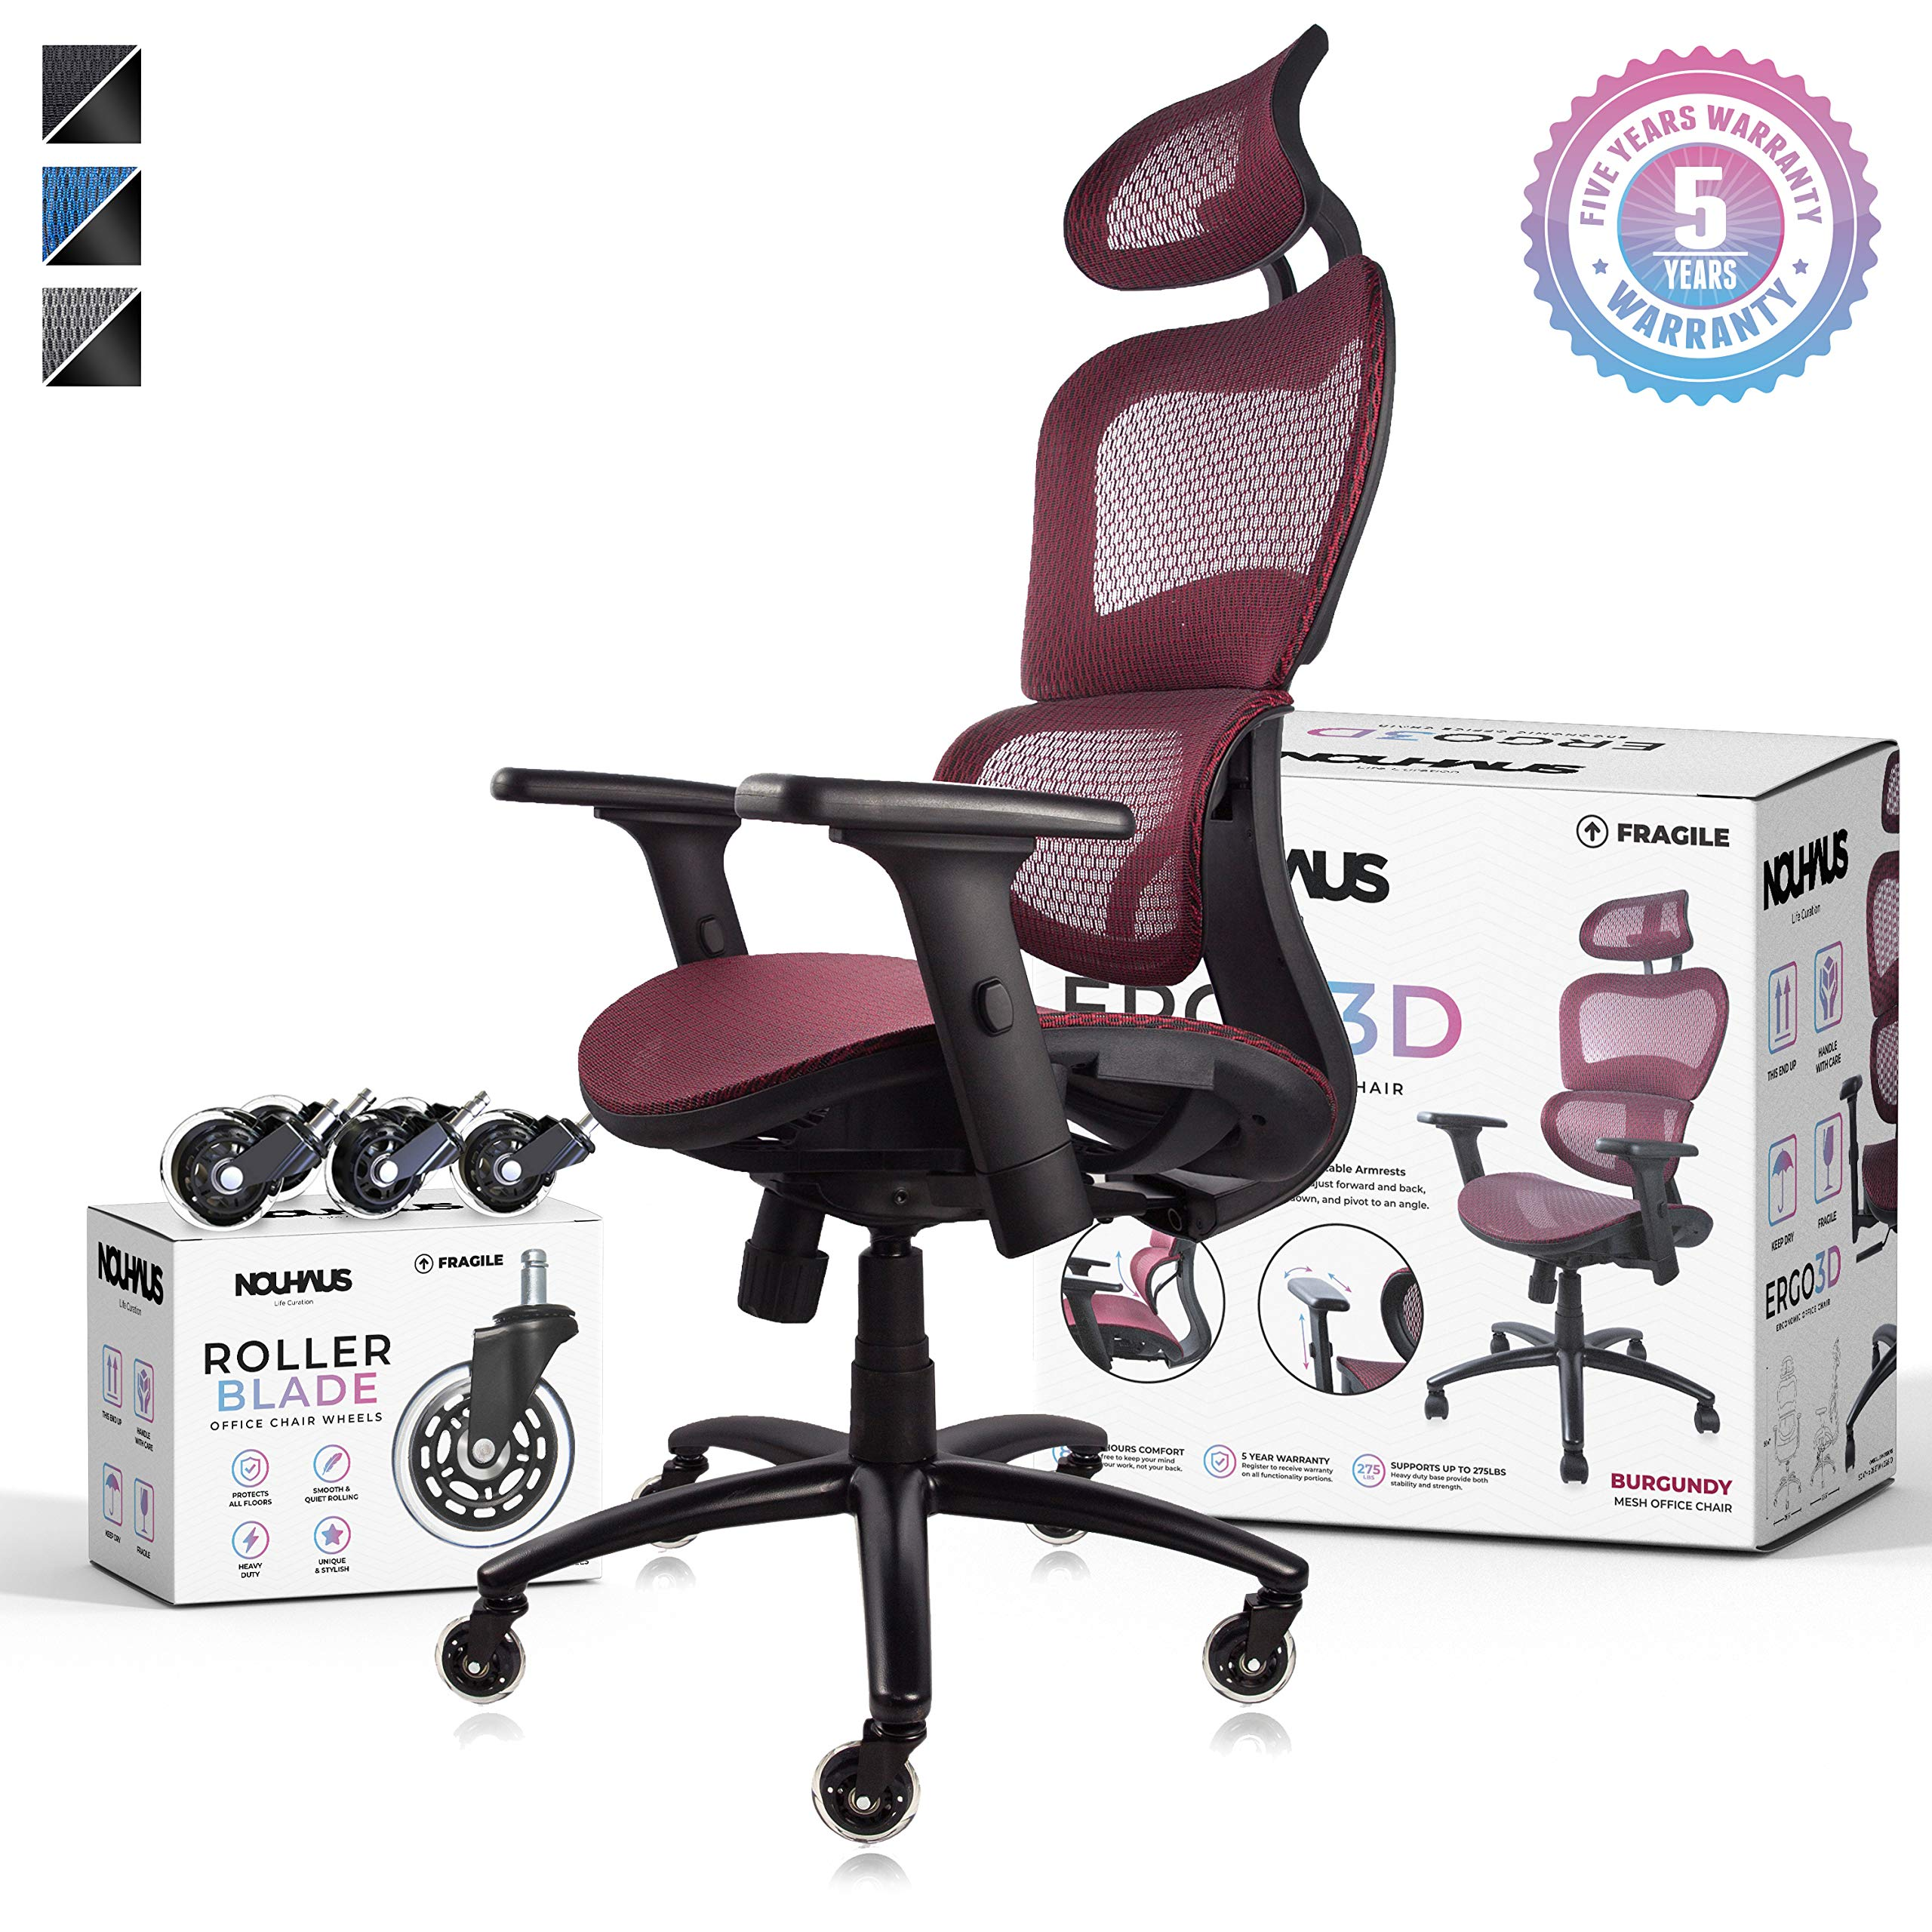 NOUHAUS Ergo3D Ergonomic Office Chair - Rolling Desk Chair with 4D Adjustable Armrest, 3D Lumbar Support and Extra Blade Wheels, Mesh Computer Chair, Gaming Chairs, Executive Swivel Chair (Burgundy) by Nouhaus